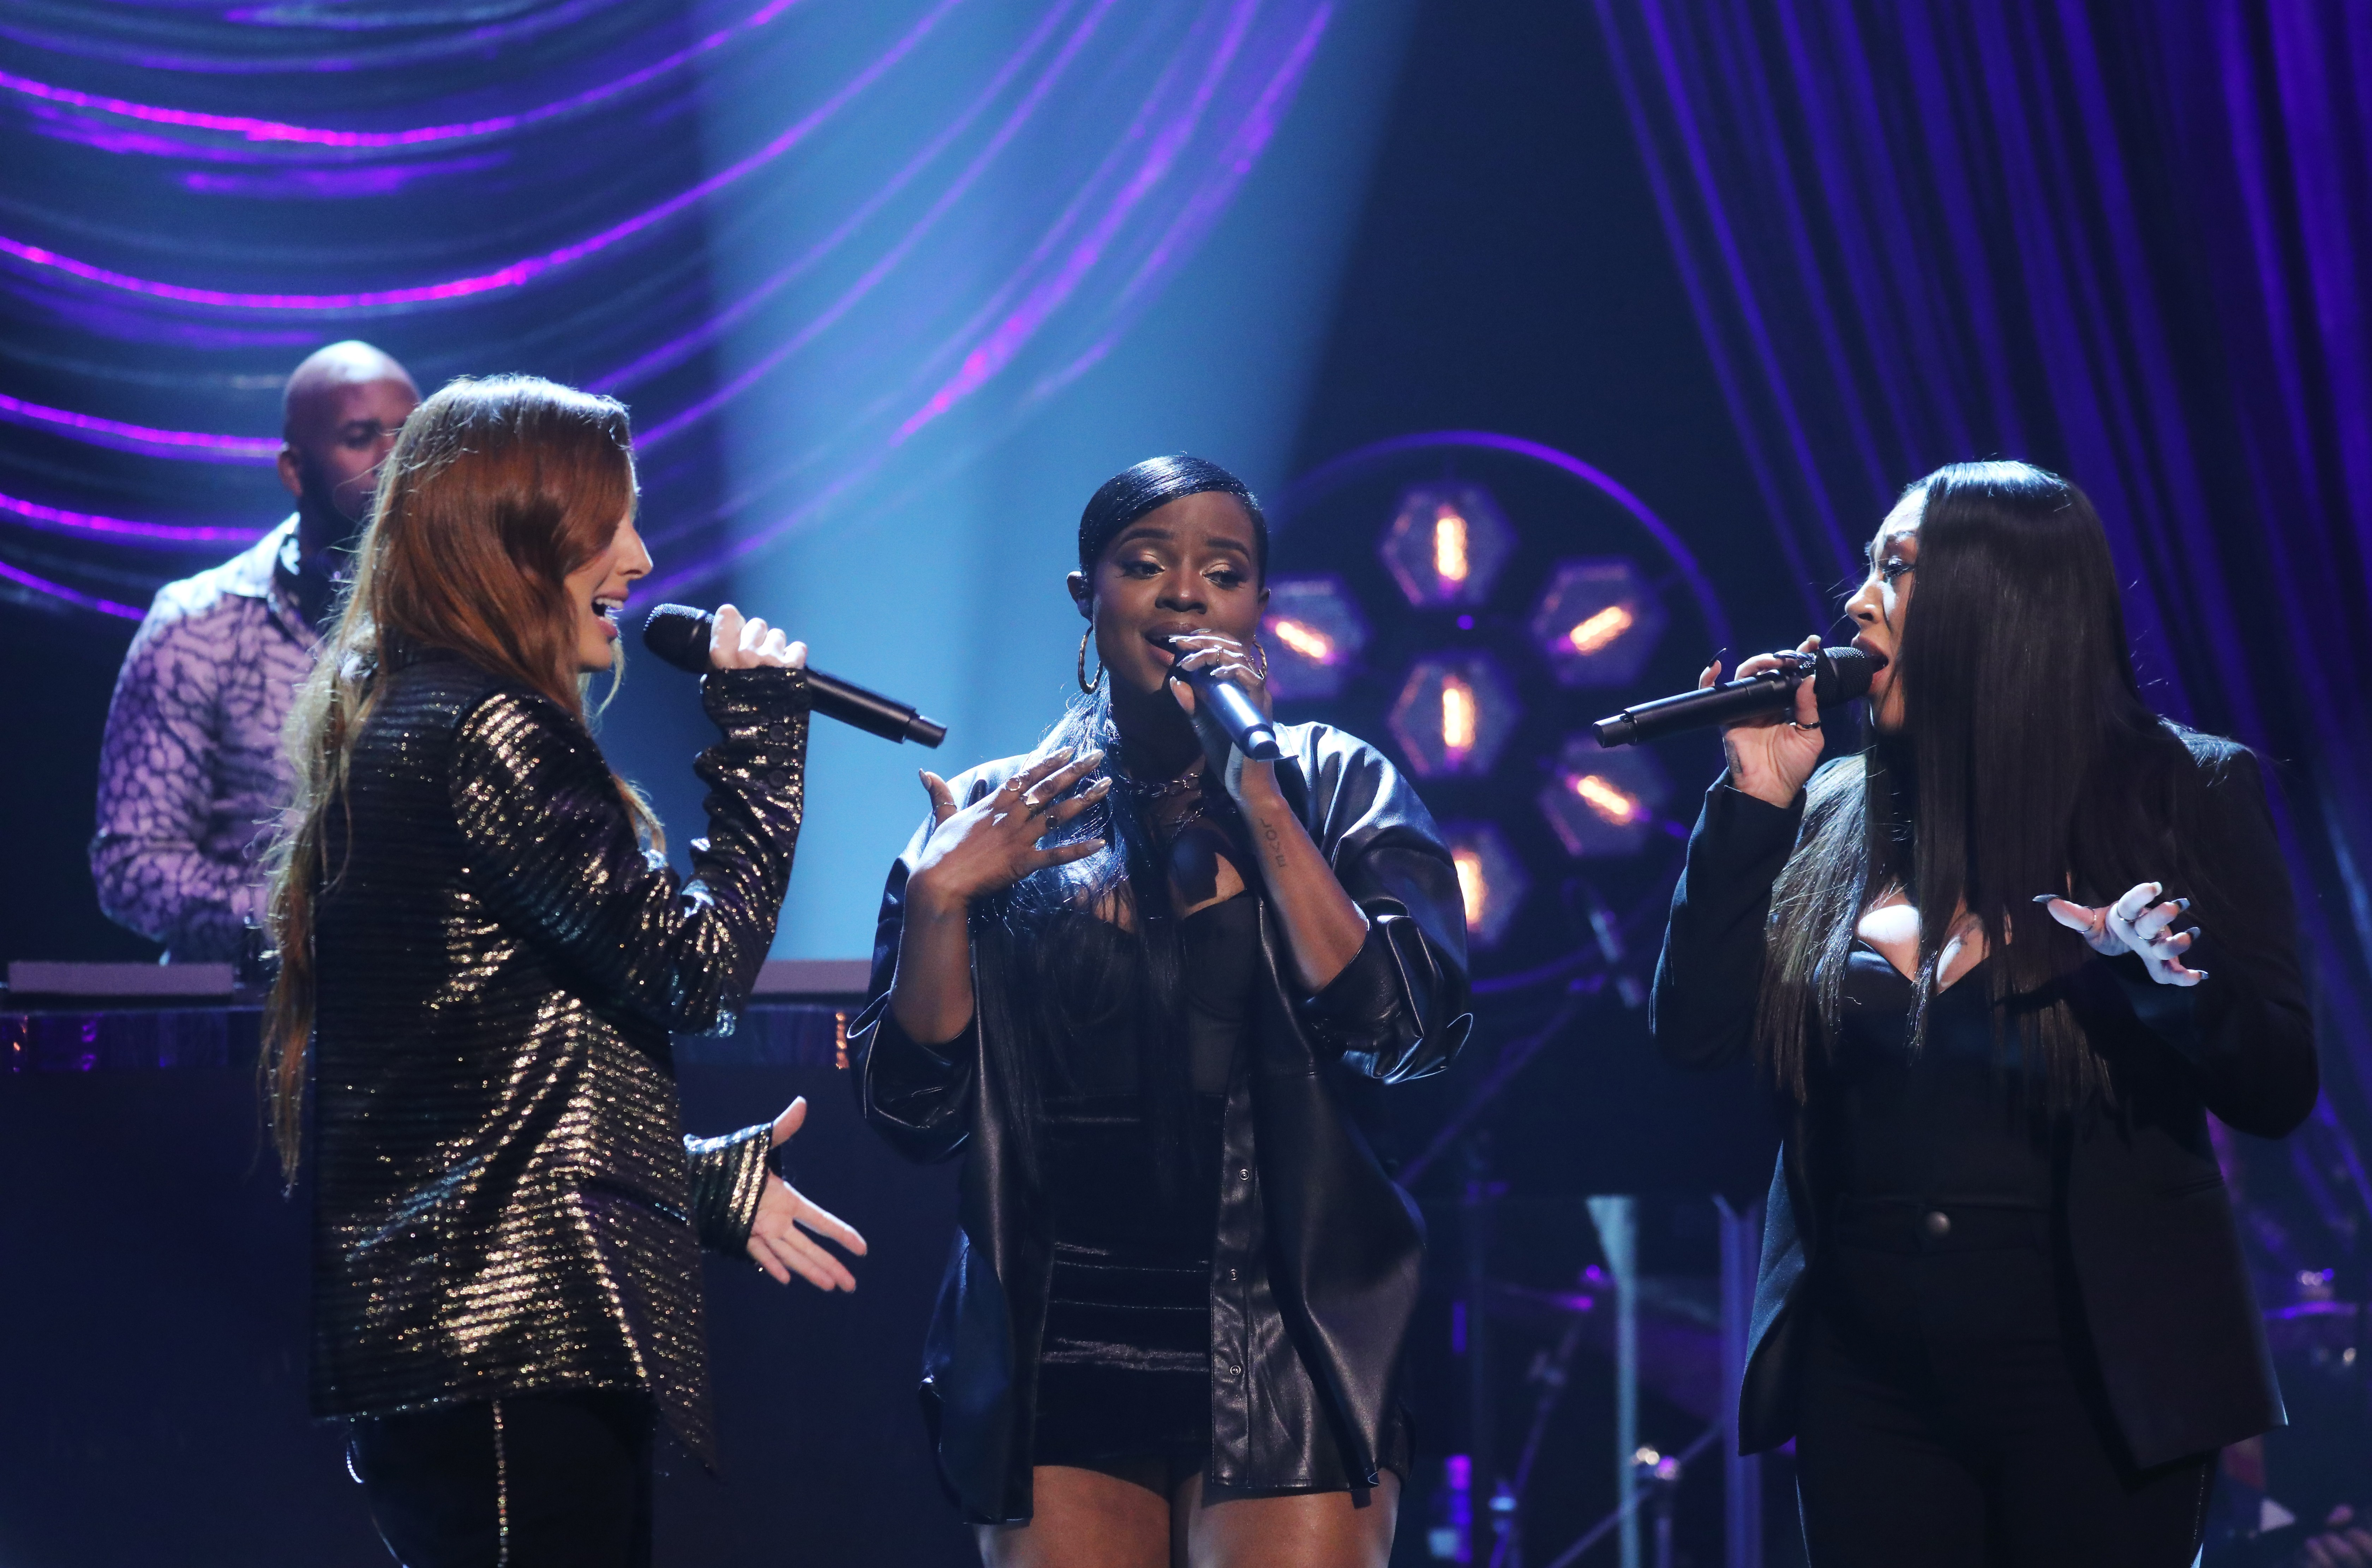 Sugababes Share Remix of 'Overload': Stream It Now